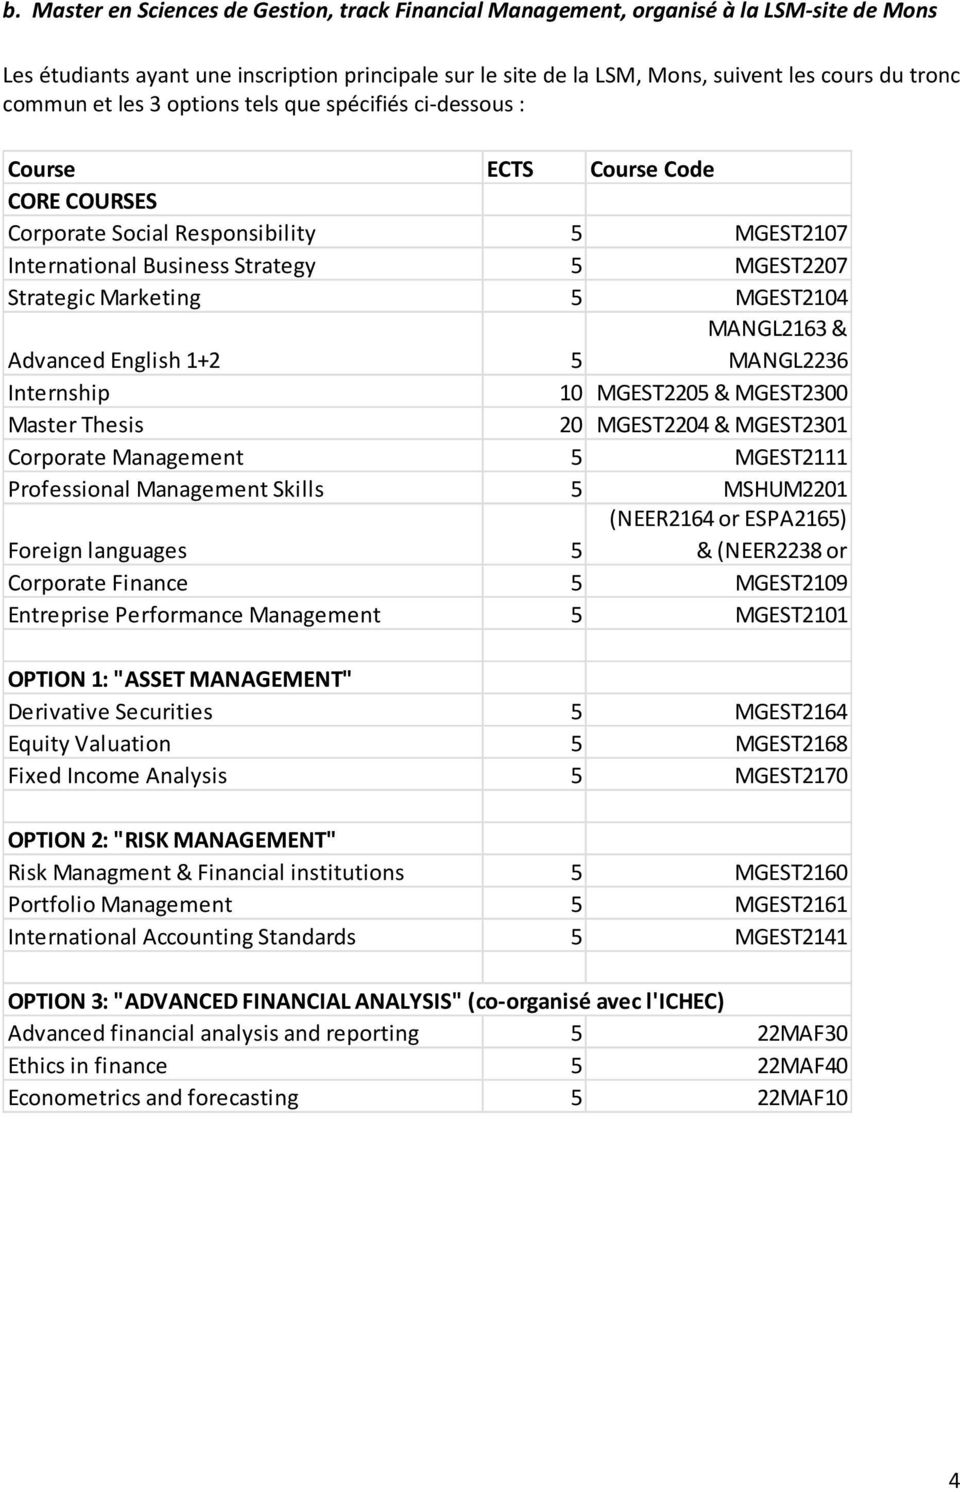 Marketing 5 MGEST2104 Advanced English 1+2 5 MANGL2163 & MANGL2236 Internship 10 MGEST2205 & MGEST2300 Master Thesis 20 MGEST2204 & MGEST2301 Corporate Management 5 MGEST2111 Professional Management